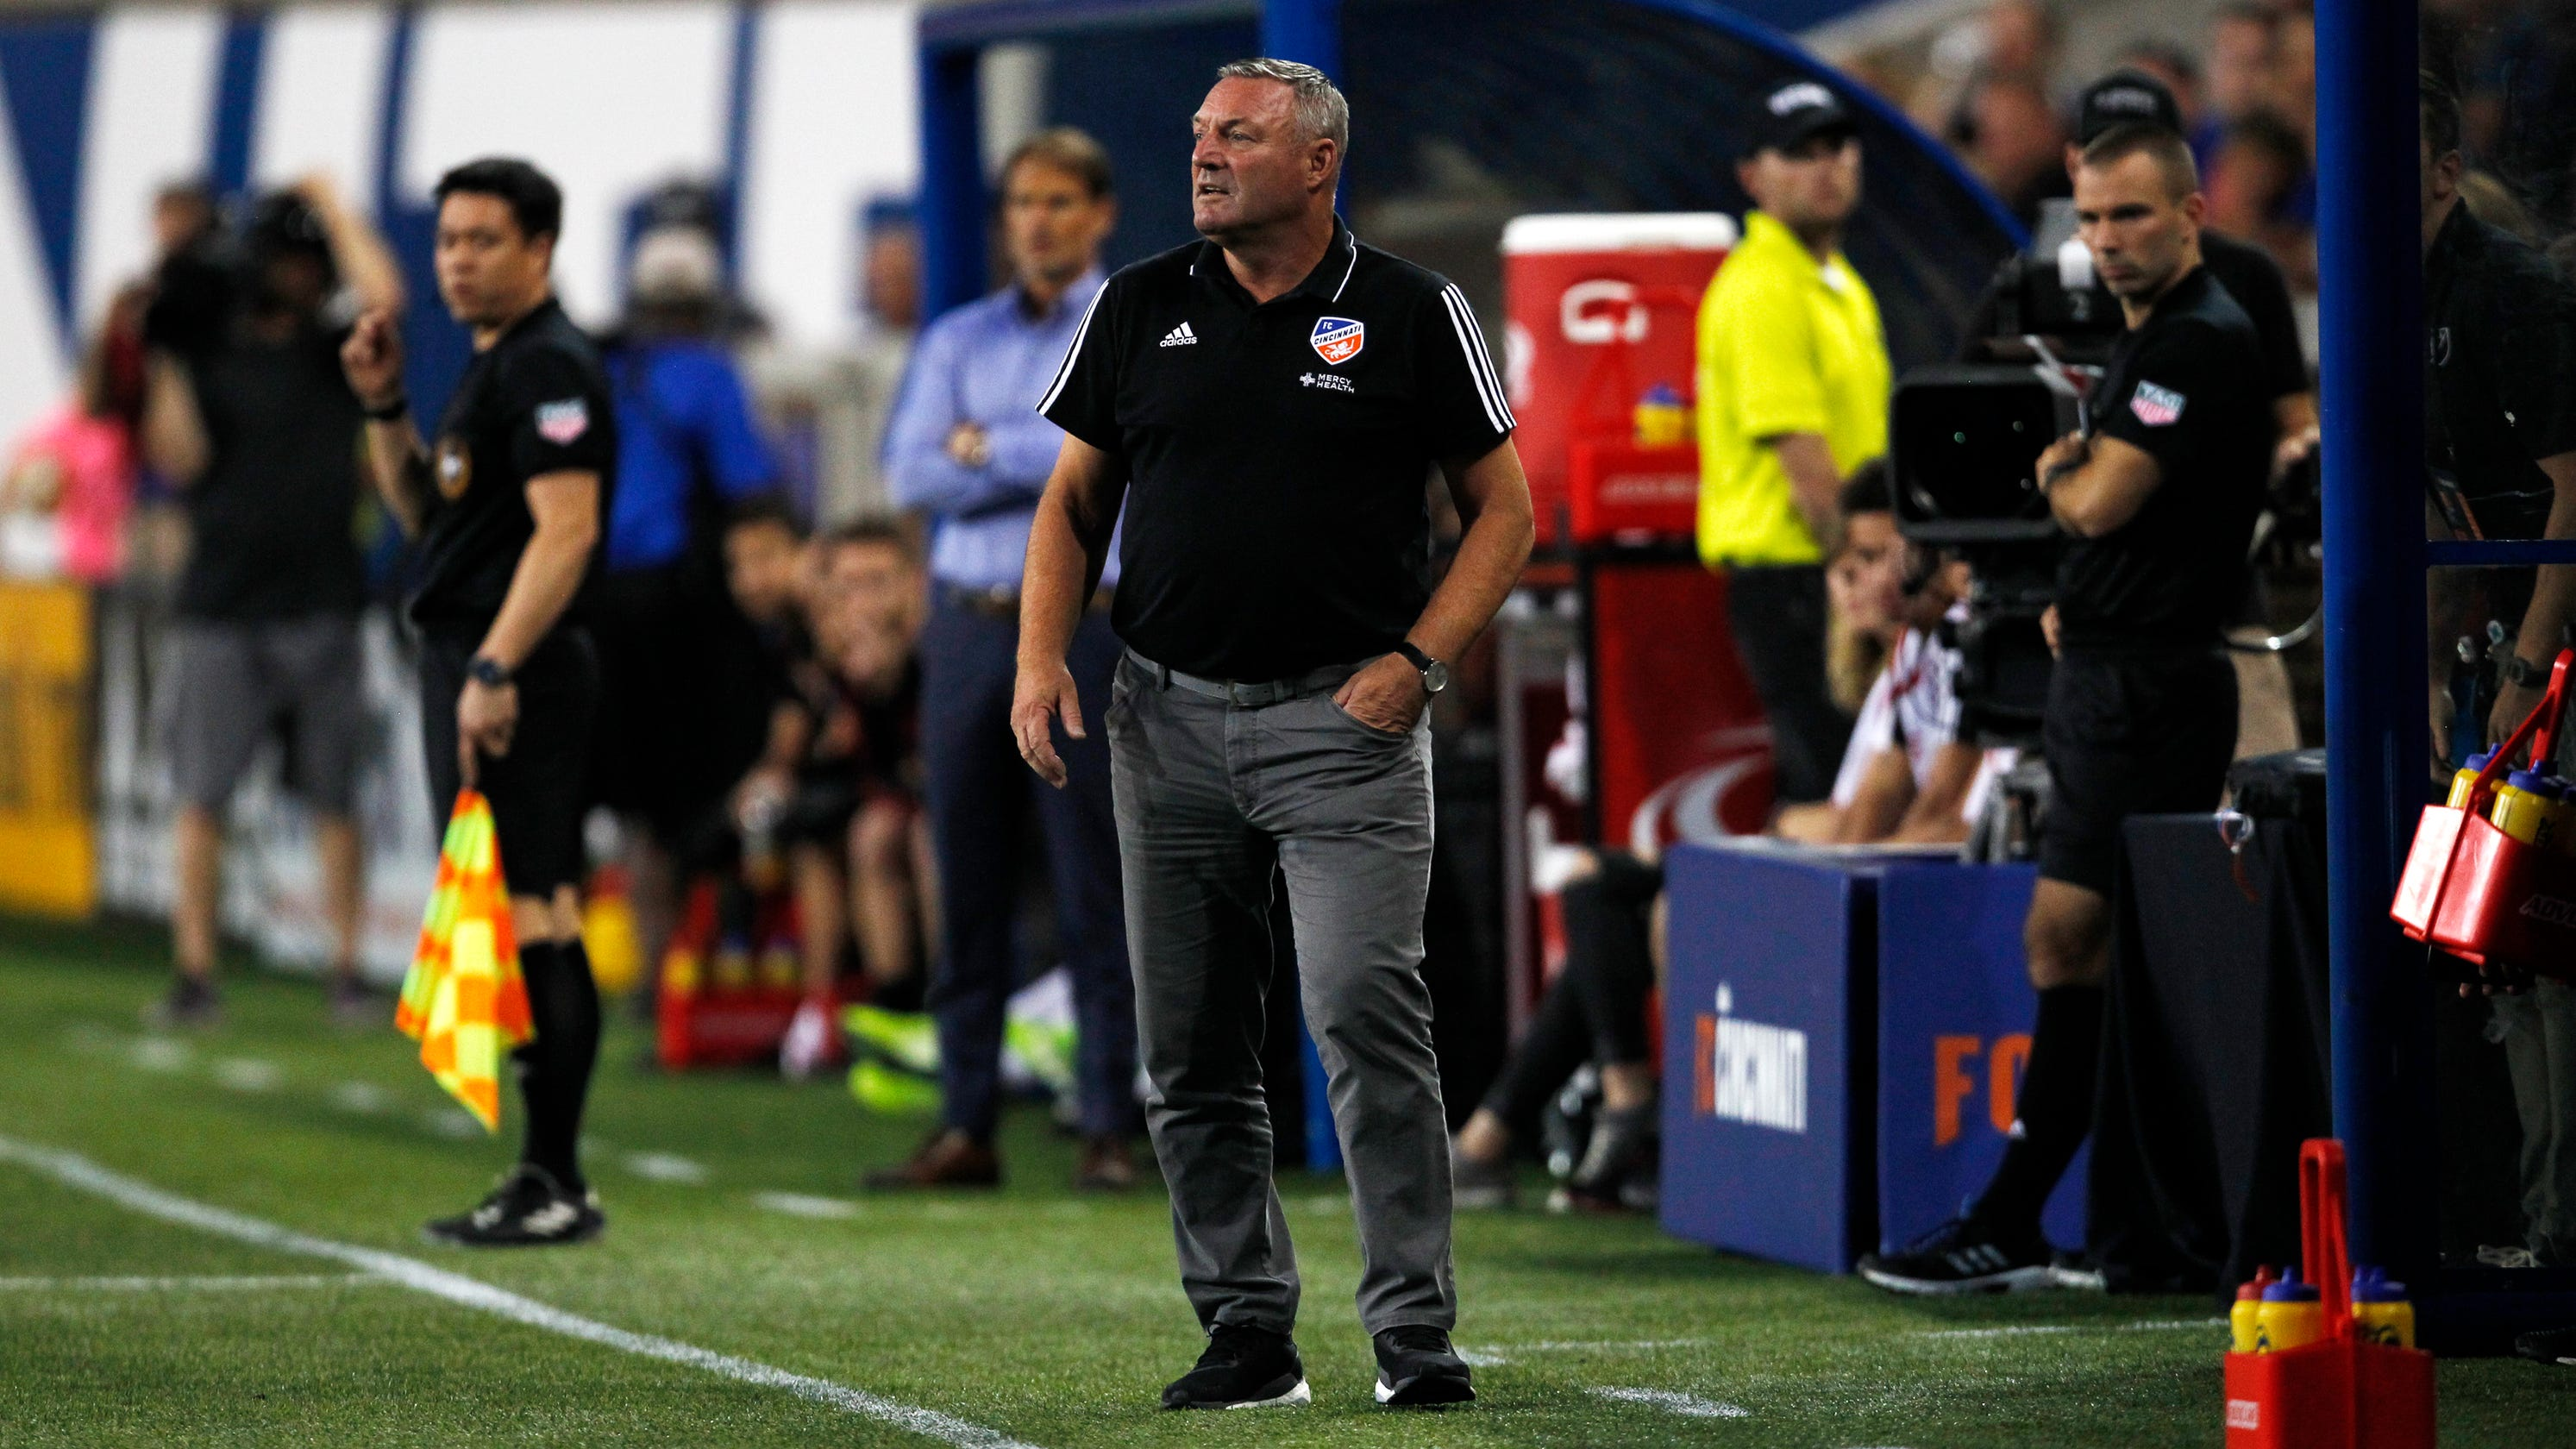 Doc's Morning Line: How do we feel about Ron Jans' departure from FC Cincinnati?